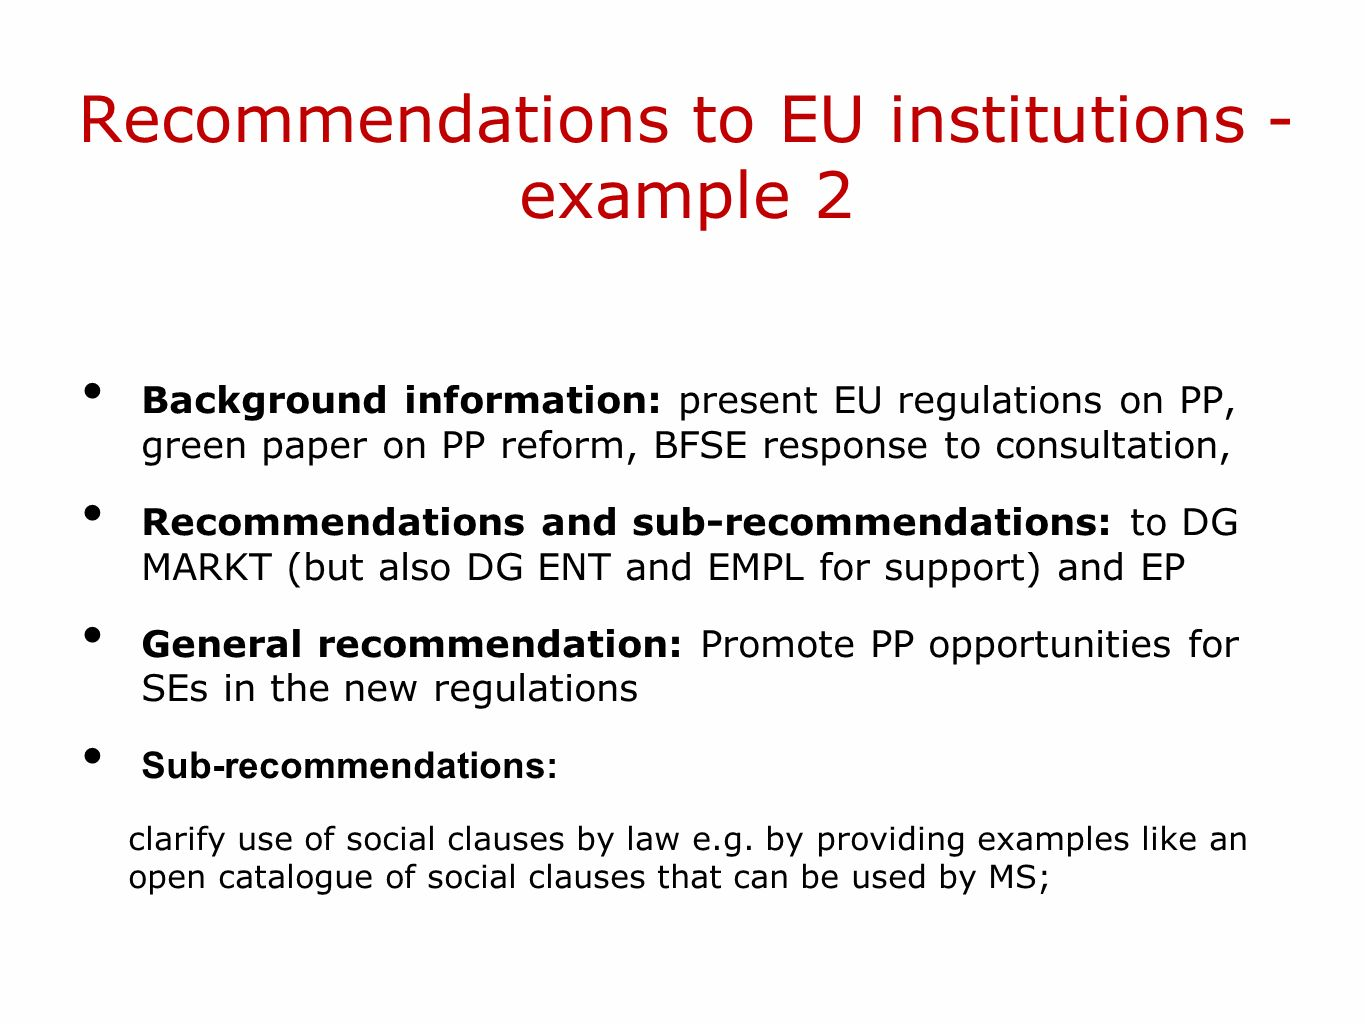 Recommendations to EU institutions - example 2